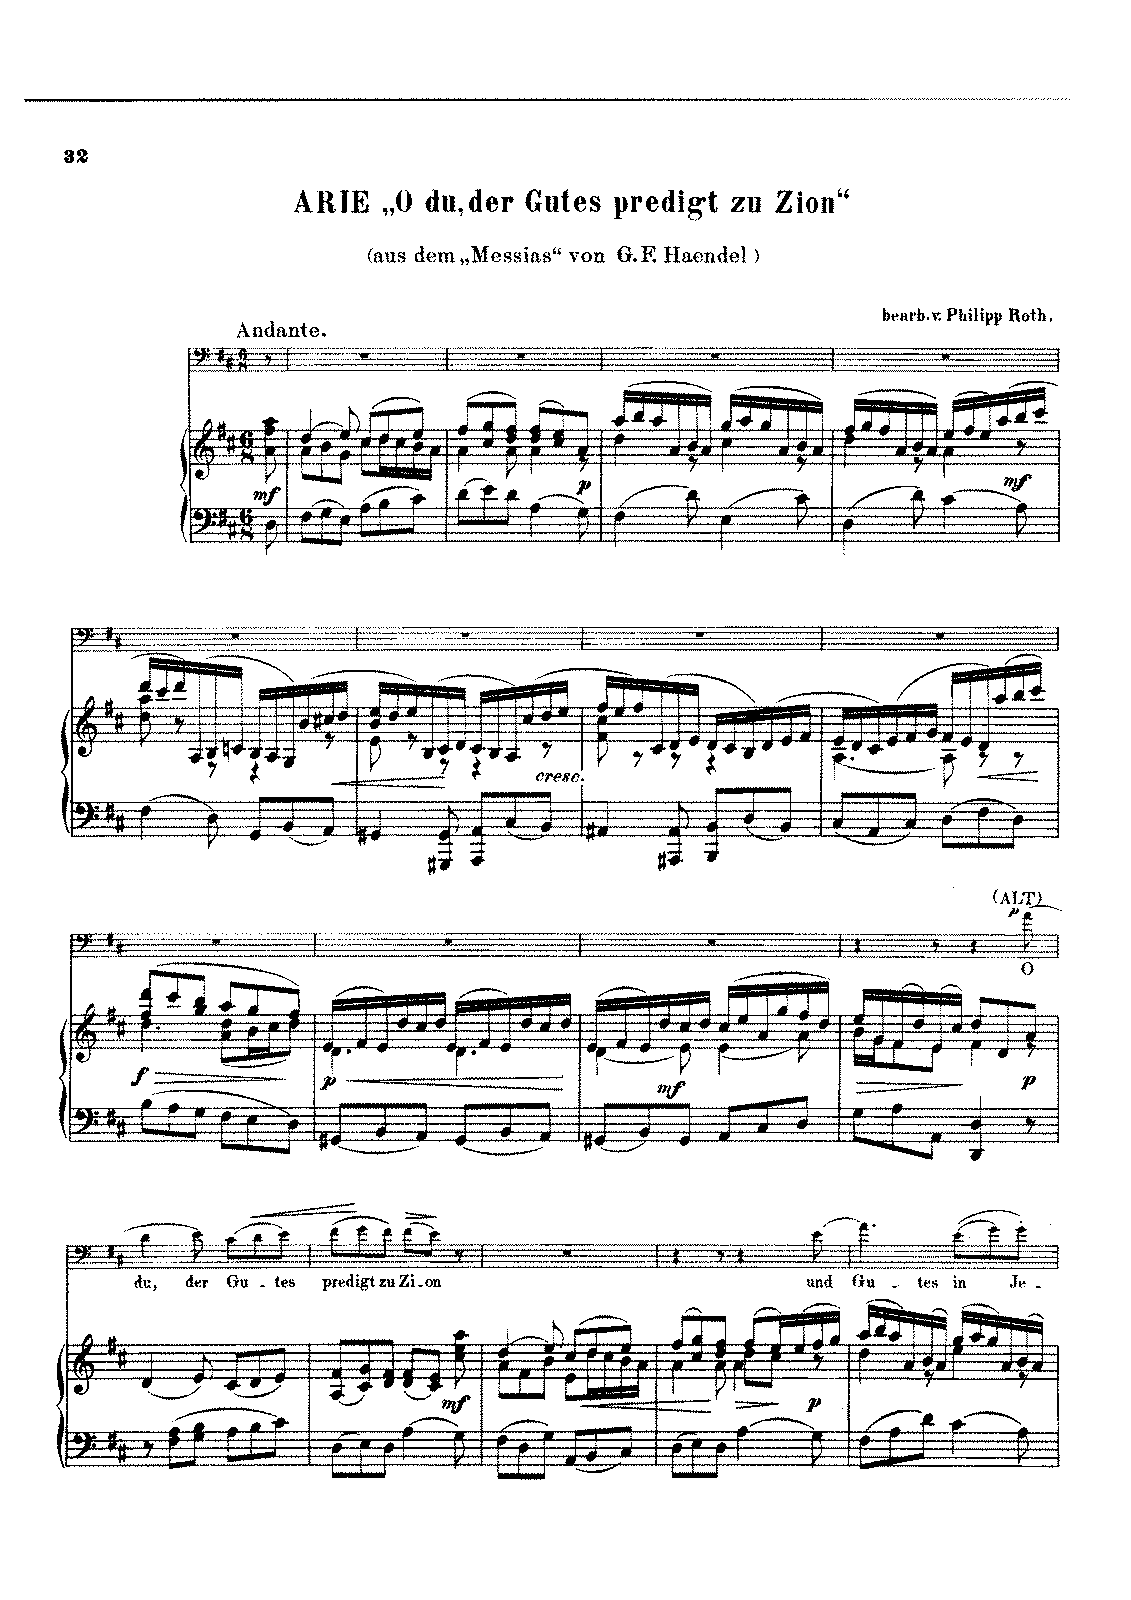 PMLP22568-Handel - Aria O du der Gutes predigt zu Zion from Messias (Roth) Cello Piano score.pdf